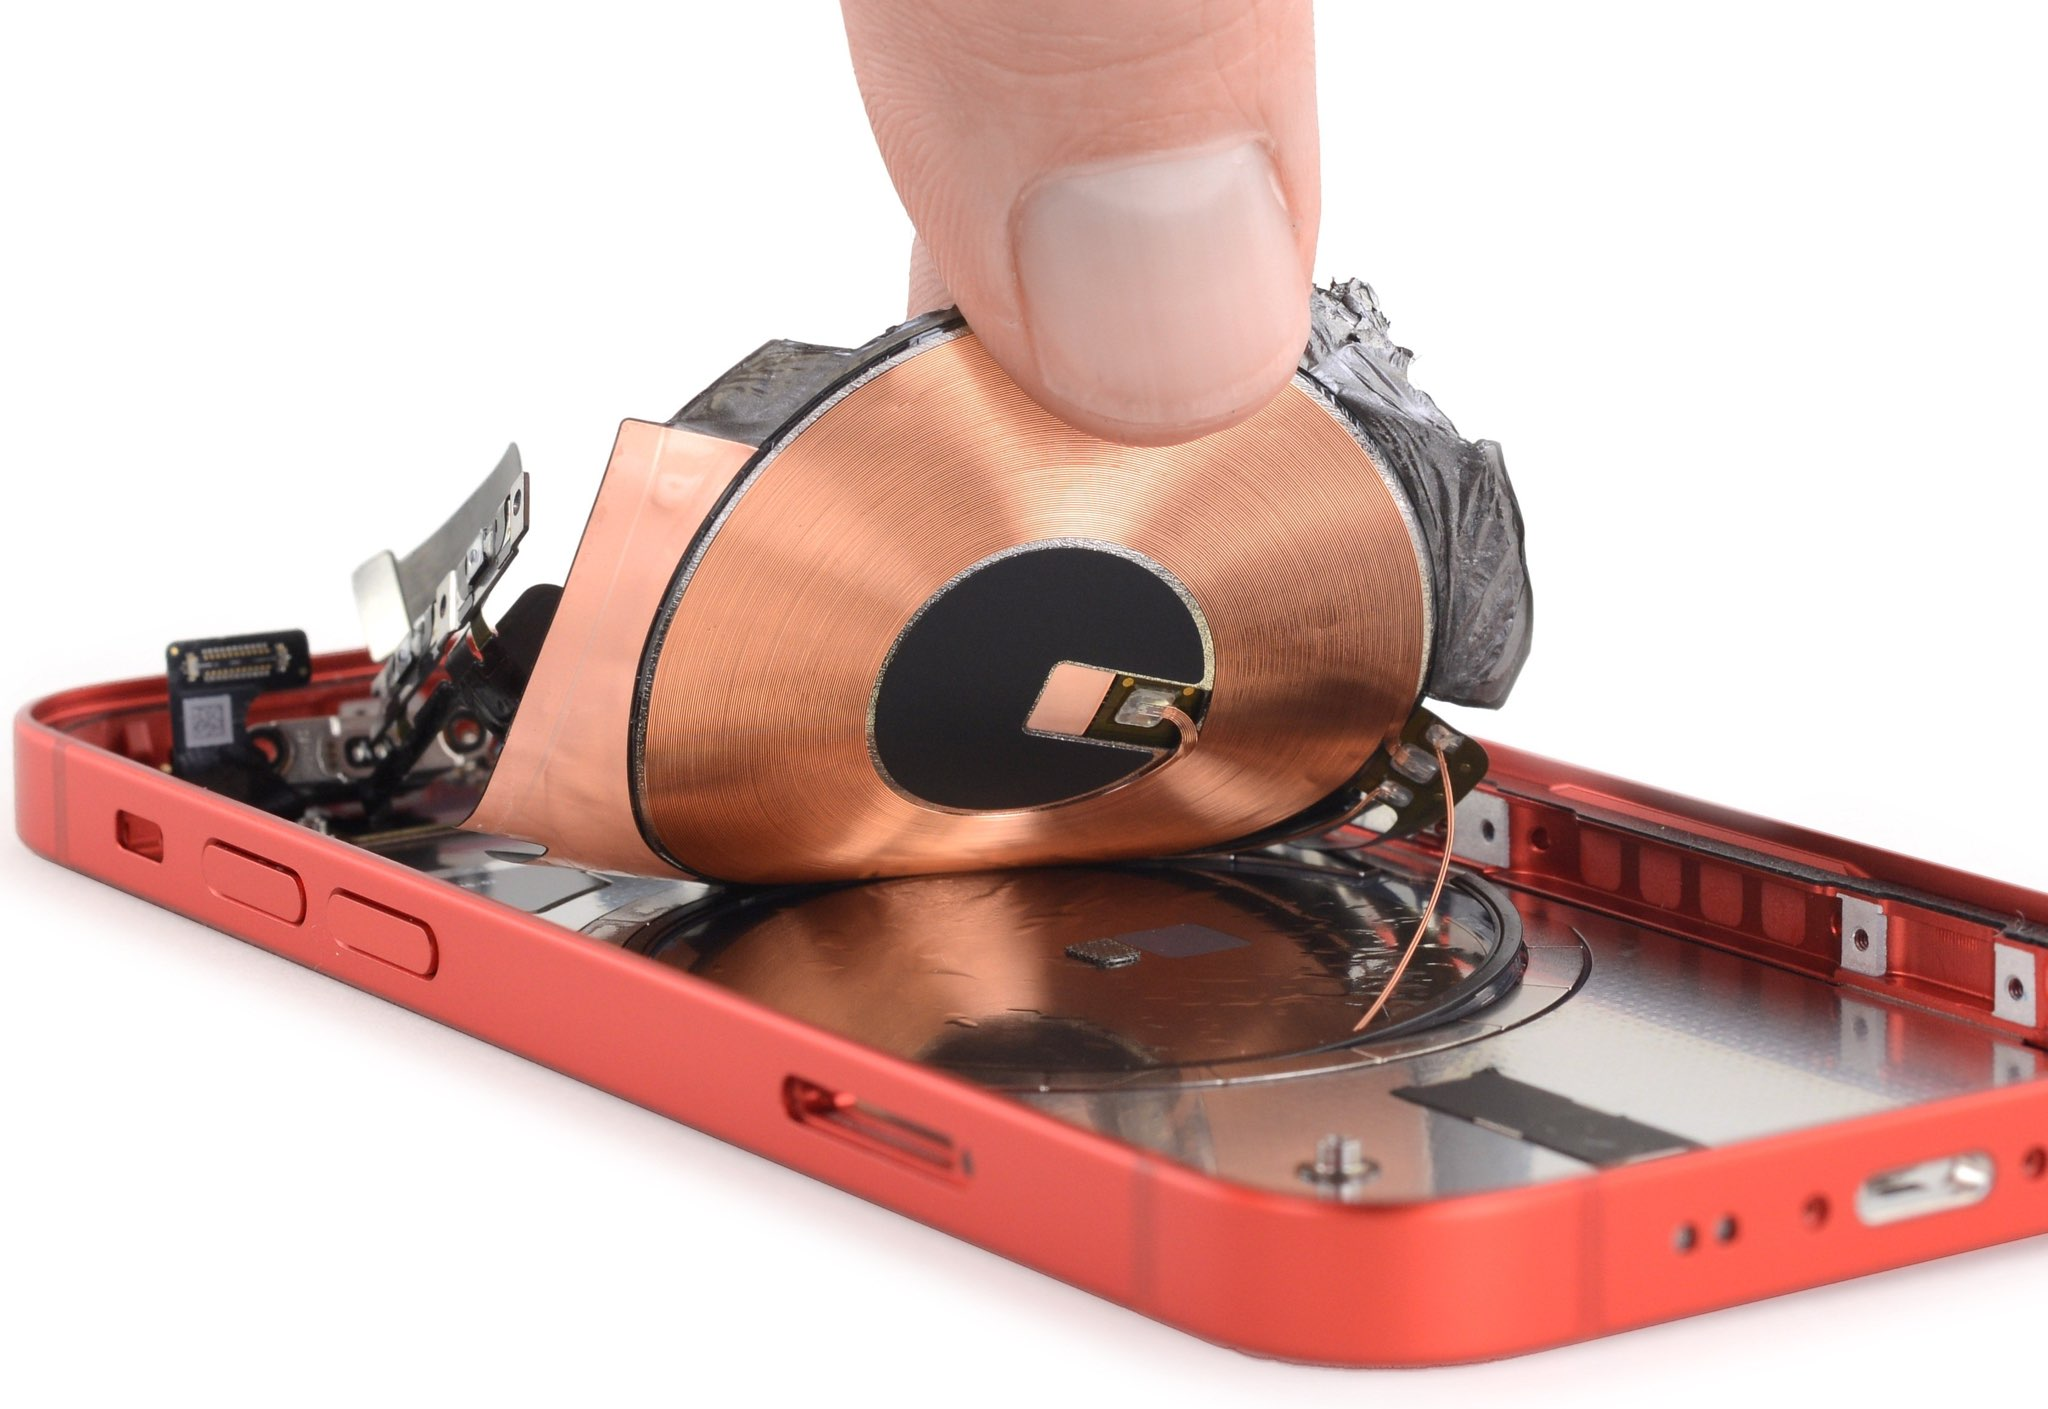 An image showing an iPhone 12 mini being torn apart